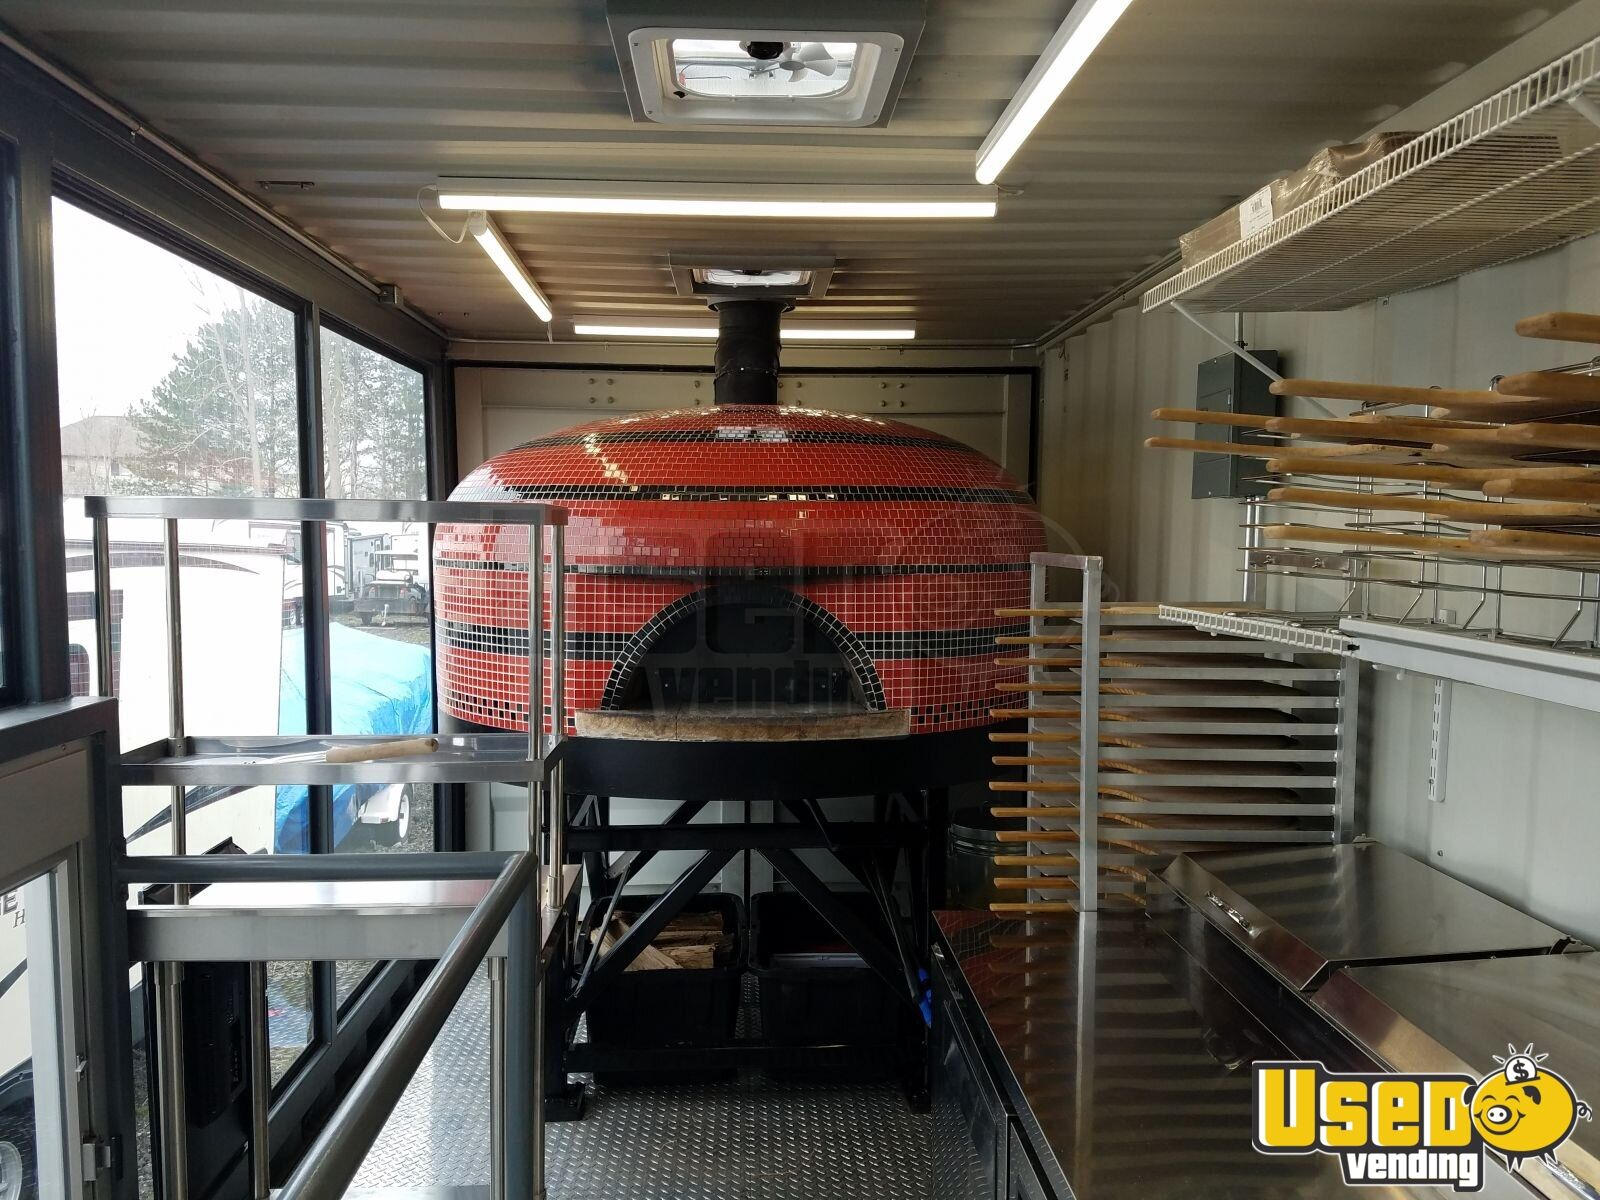 2006 Pizza Food Truck Generator Michigan Diesel Engine for Sale - 8